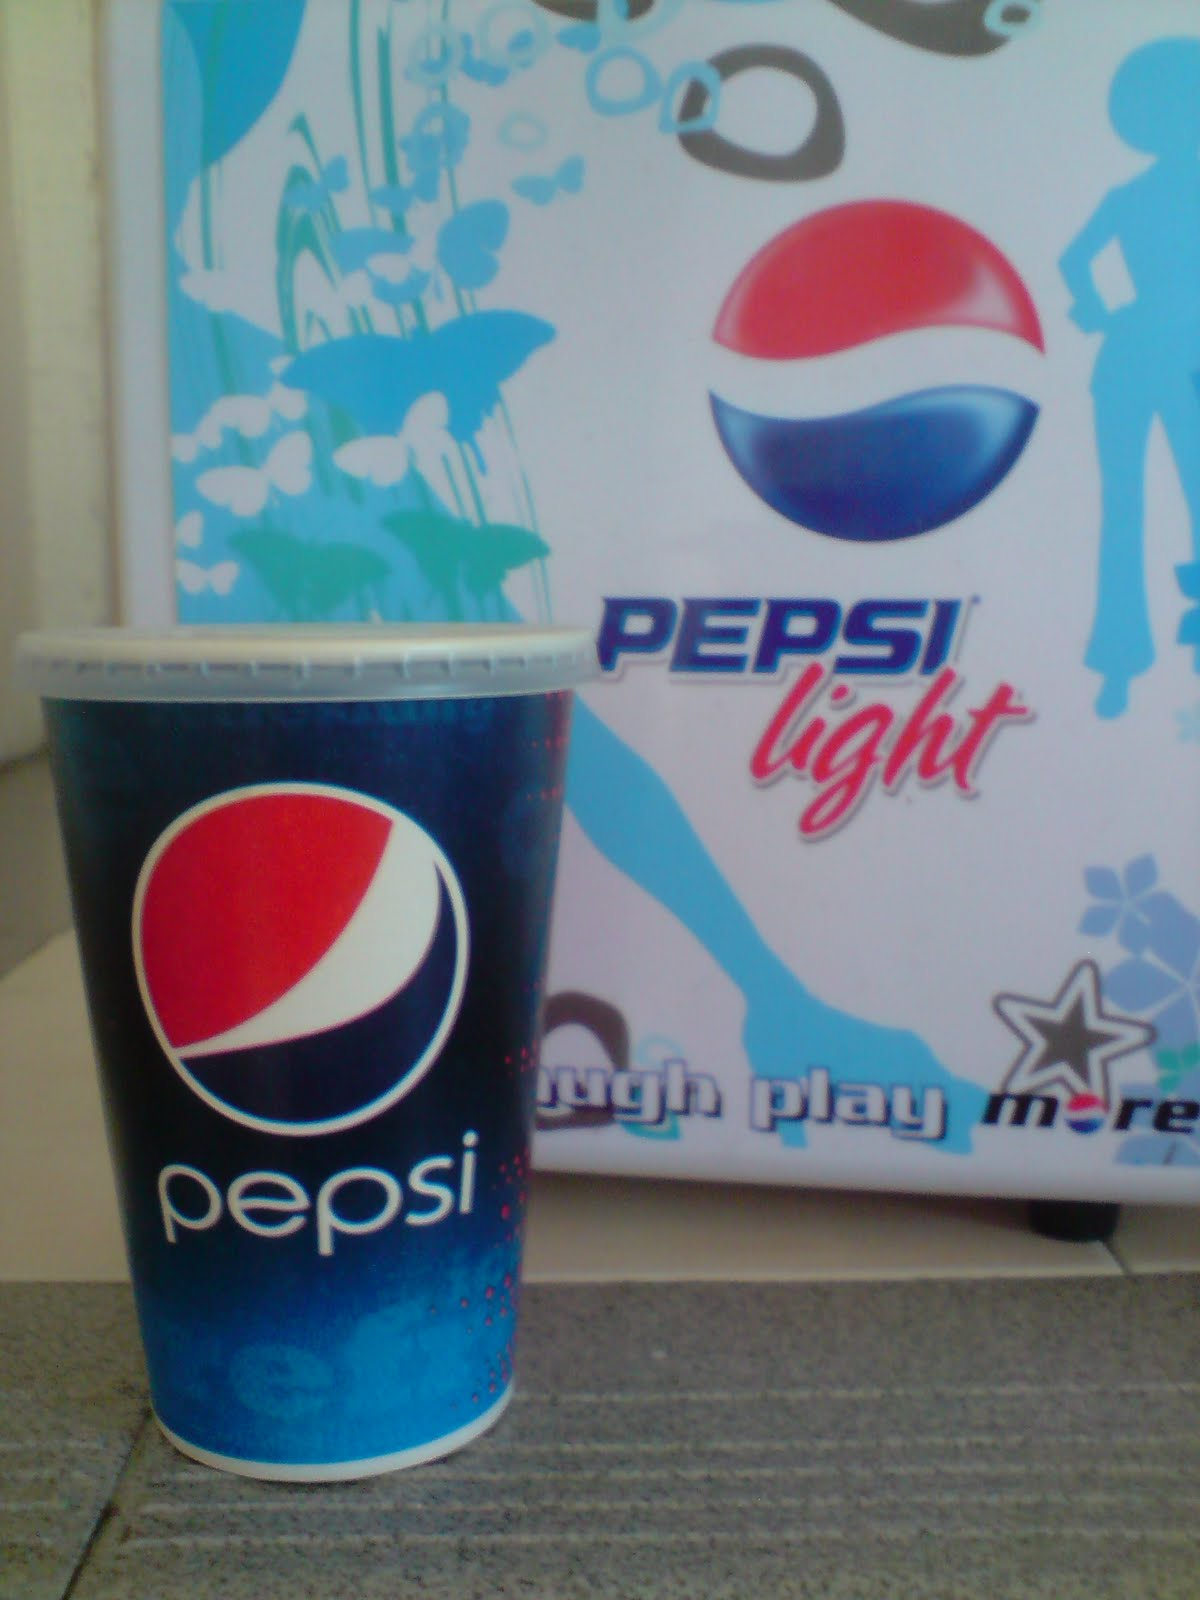 coke classic verses pepsi the choice Coke vs pepsi this vs that april since coke is more carbonated, the classic cola taste doesn't become flat as fast as pepsi pepsi claims to be the choice.